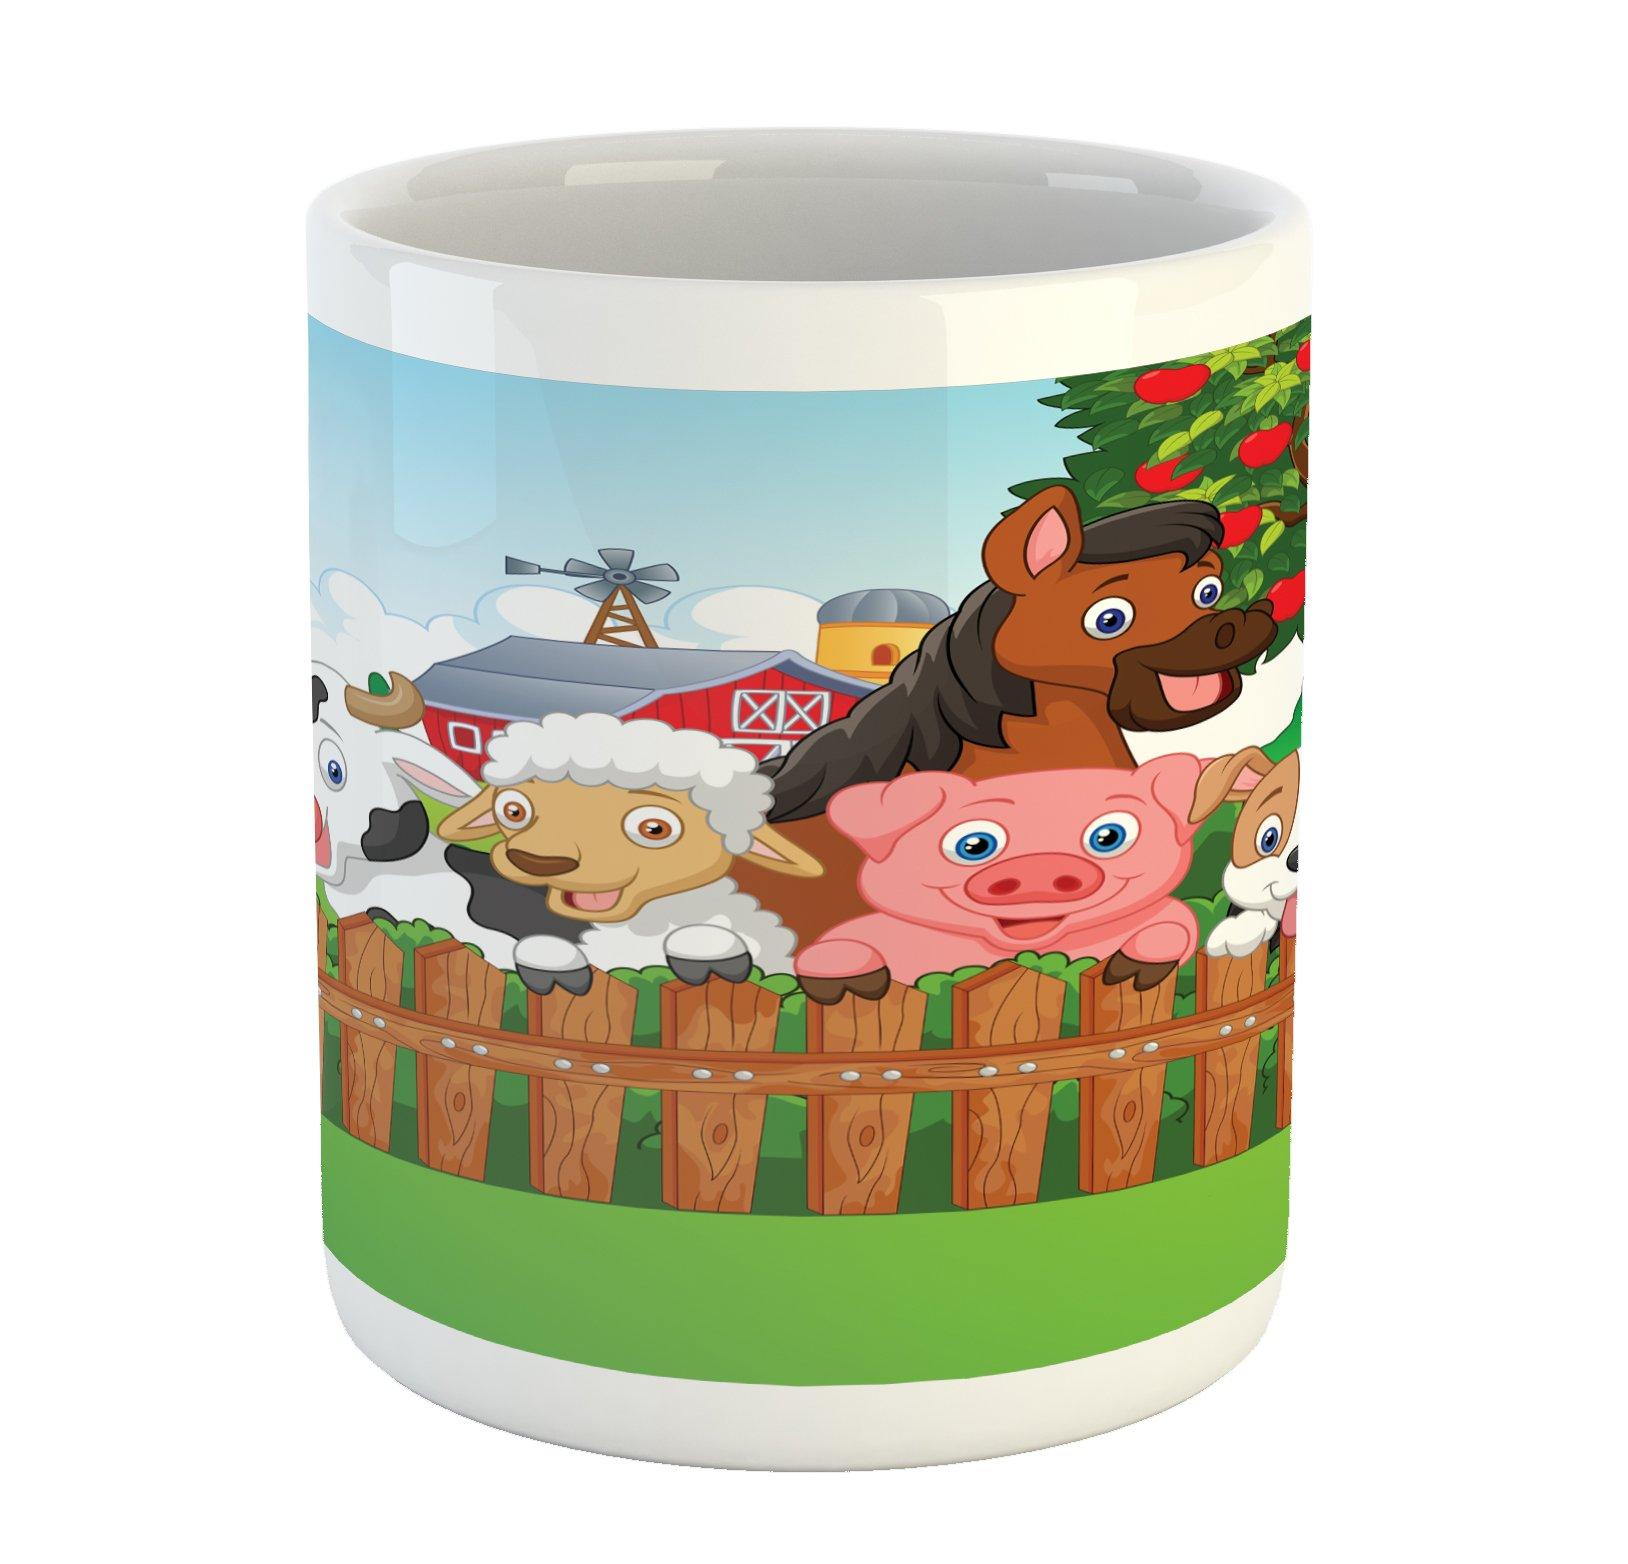 Ambesonne Cartoon Mug, Composition Cute Farm Animals on Fence Comic Mascots with Dog Cow Horse Kids Design, Printed Ceramic Coffee Mug Water Tea Drinks Cup, Multicolor